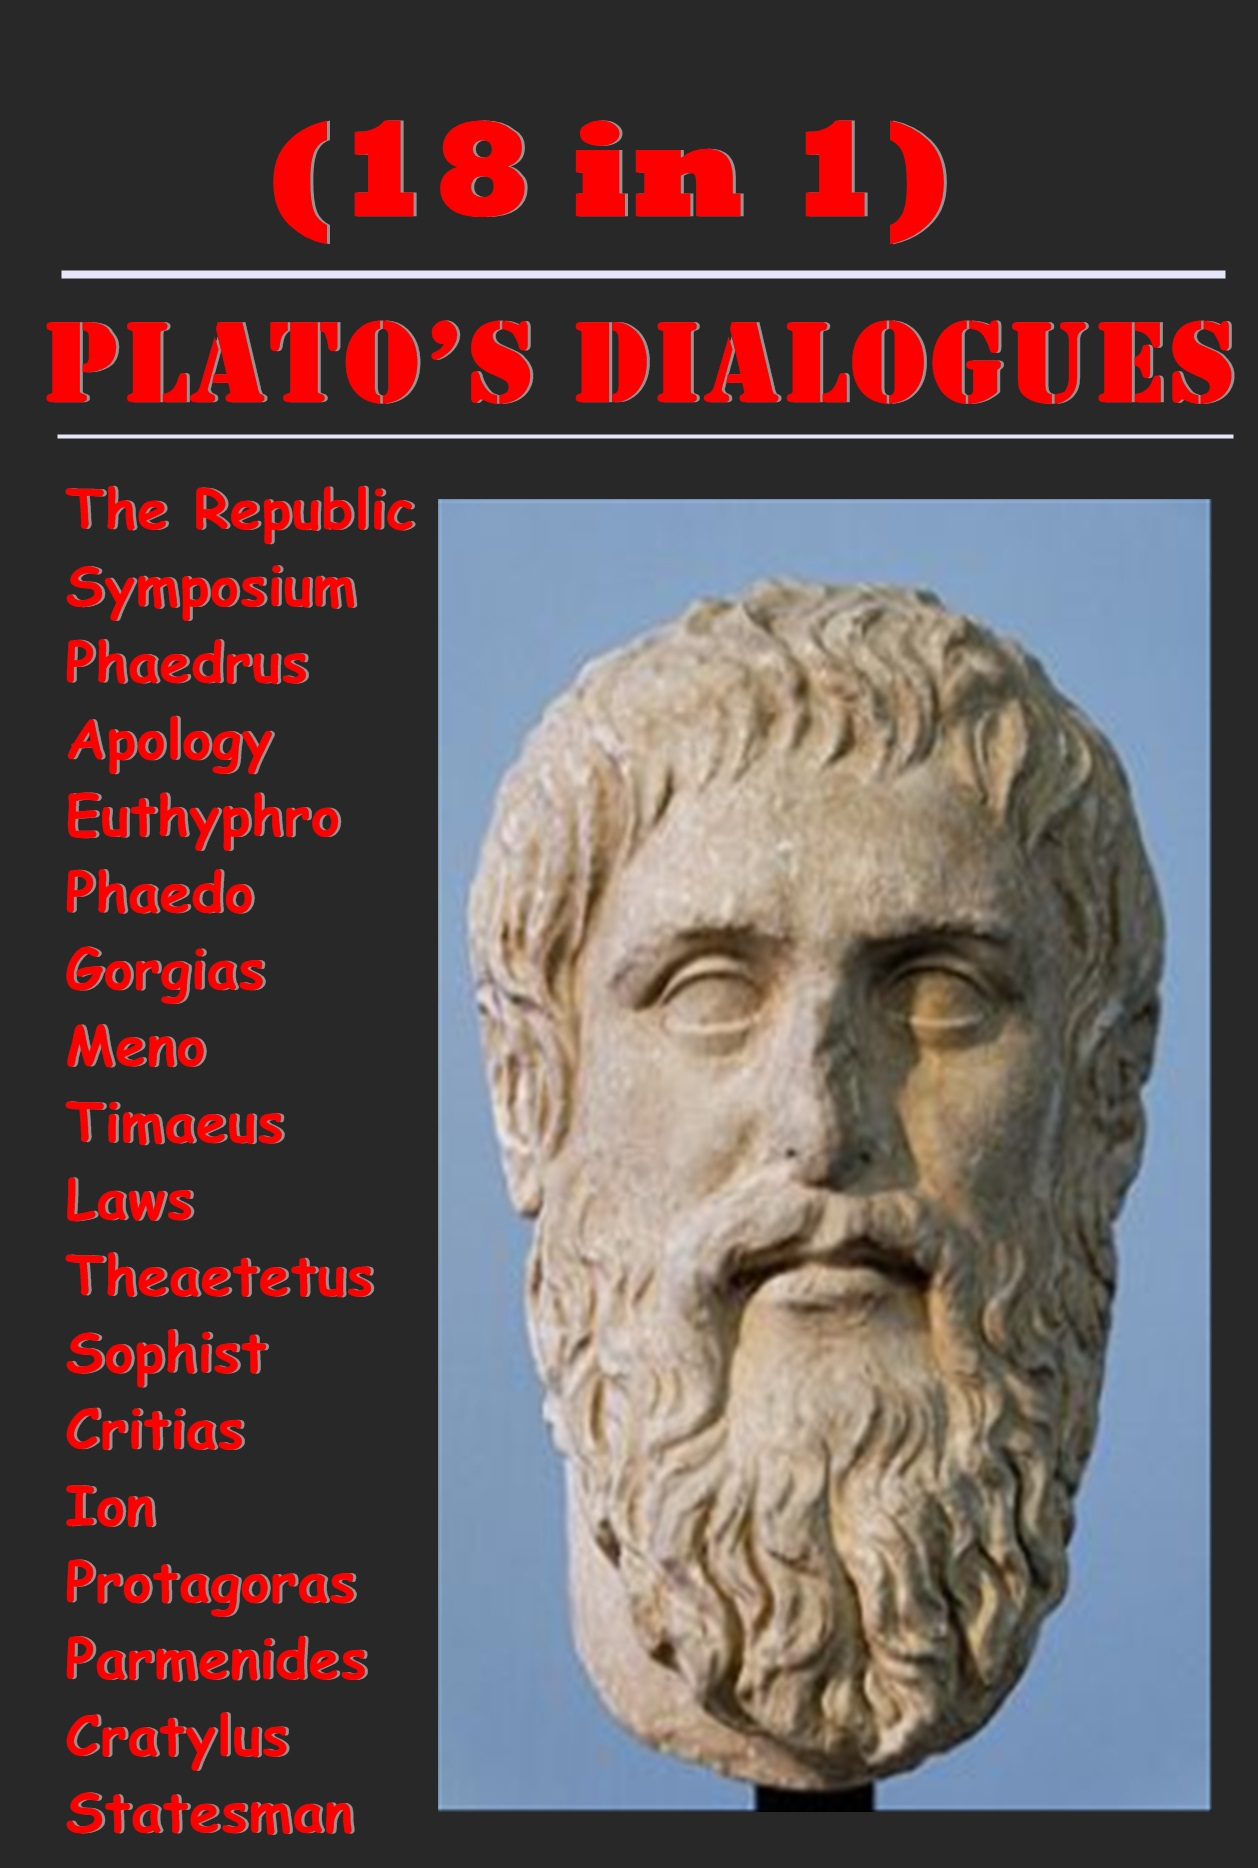 Plato - Plato's Complete Philosophy Dialogues Anthologies (18 in 1)